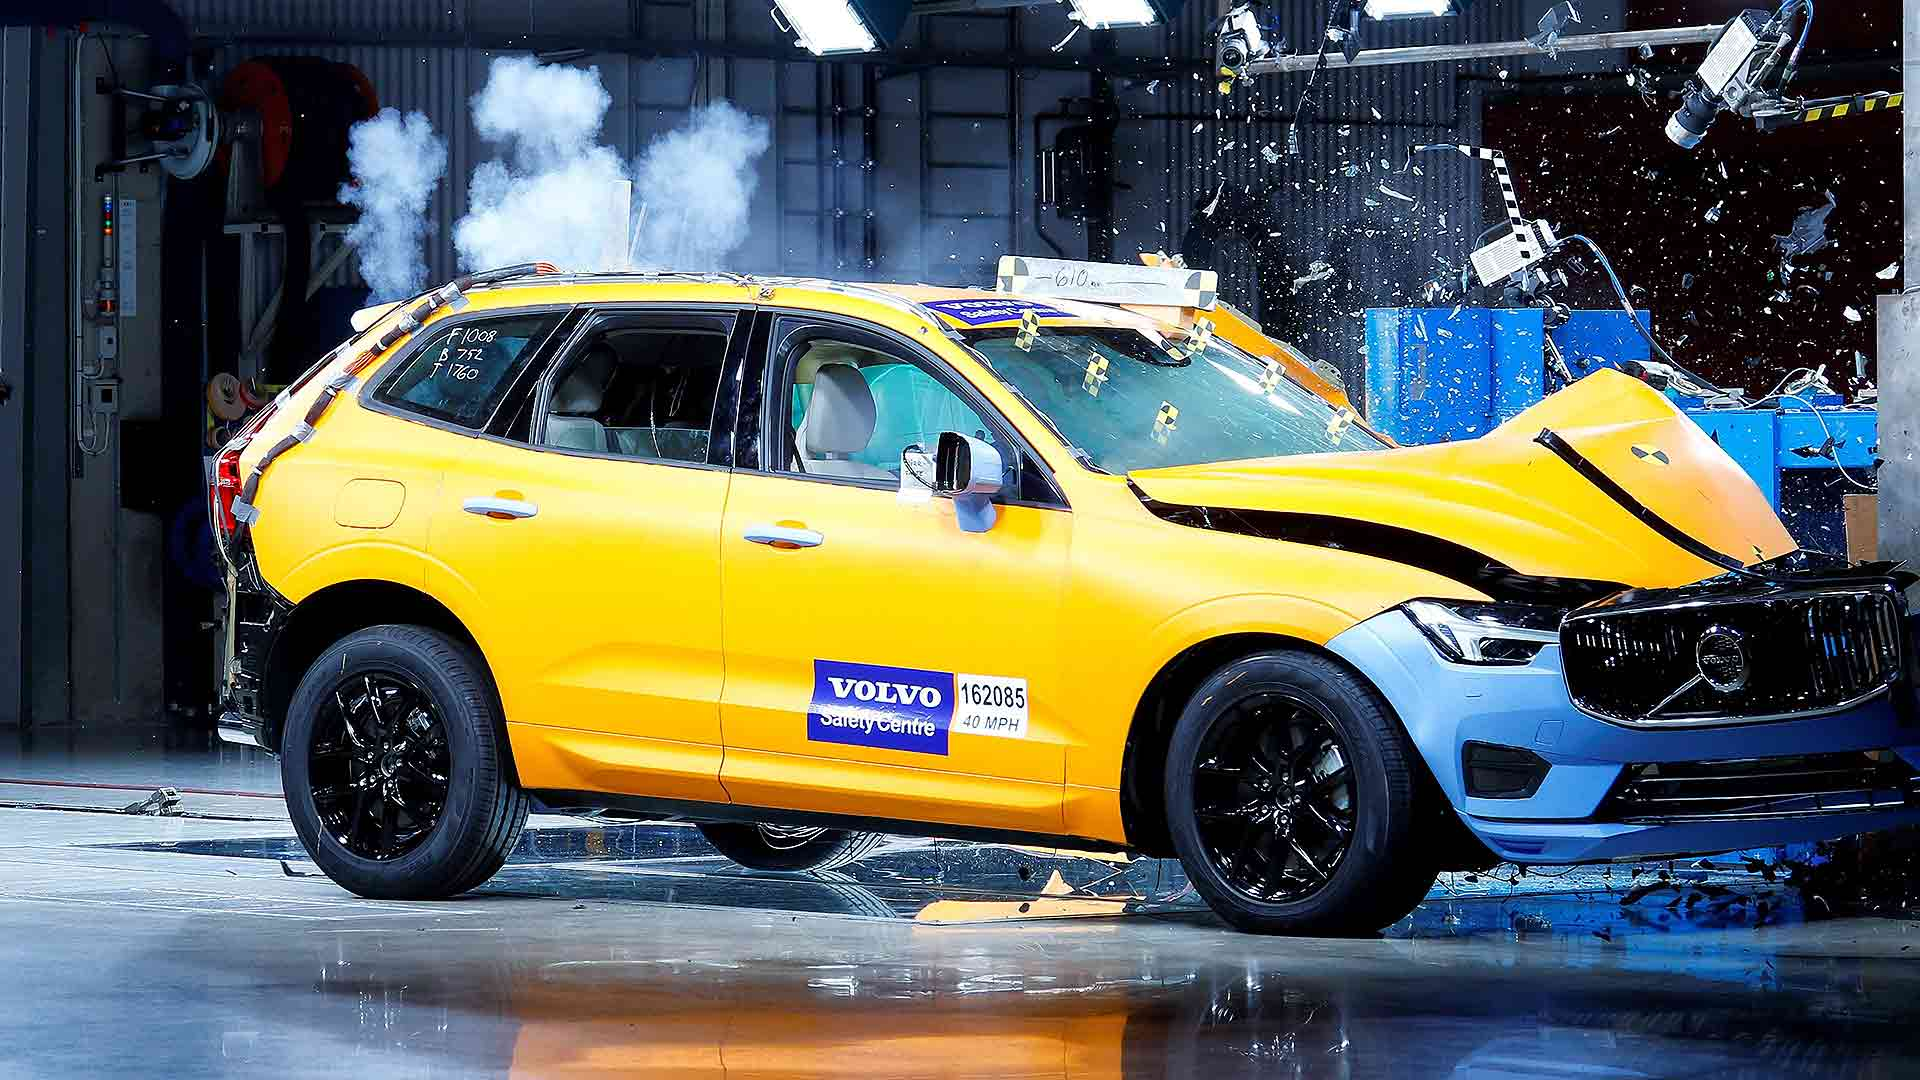 Volvo XC60 safety crash test